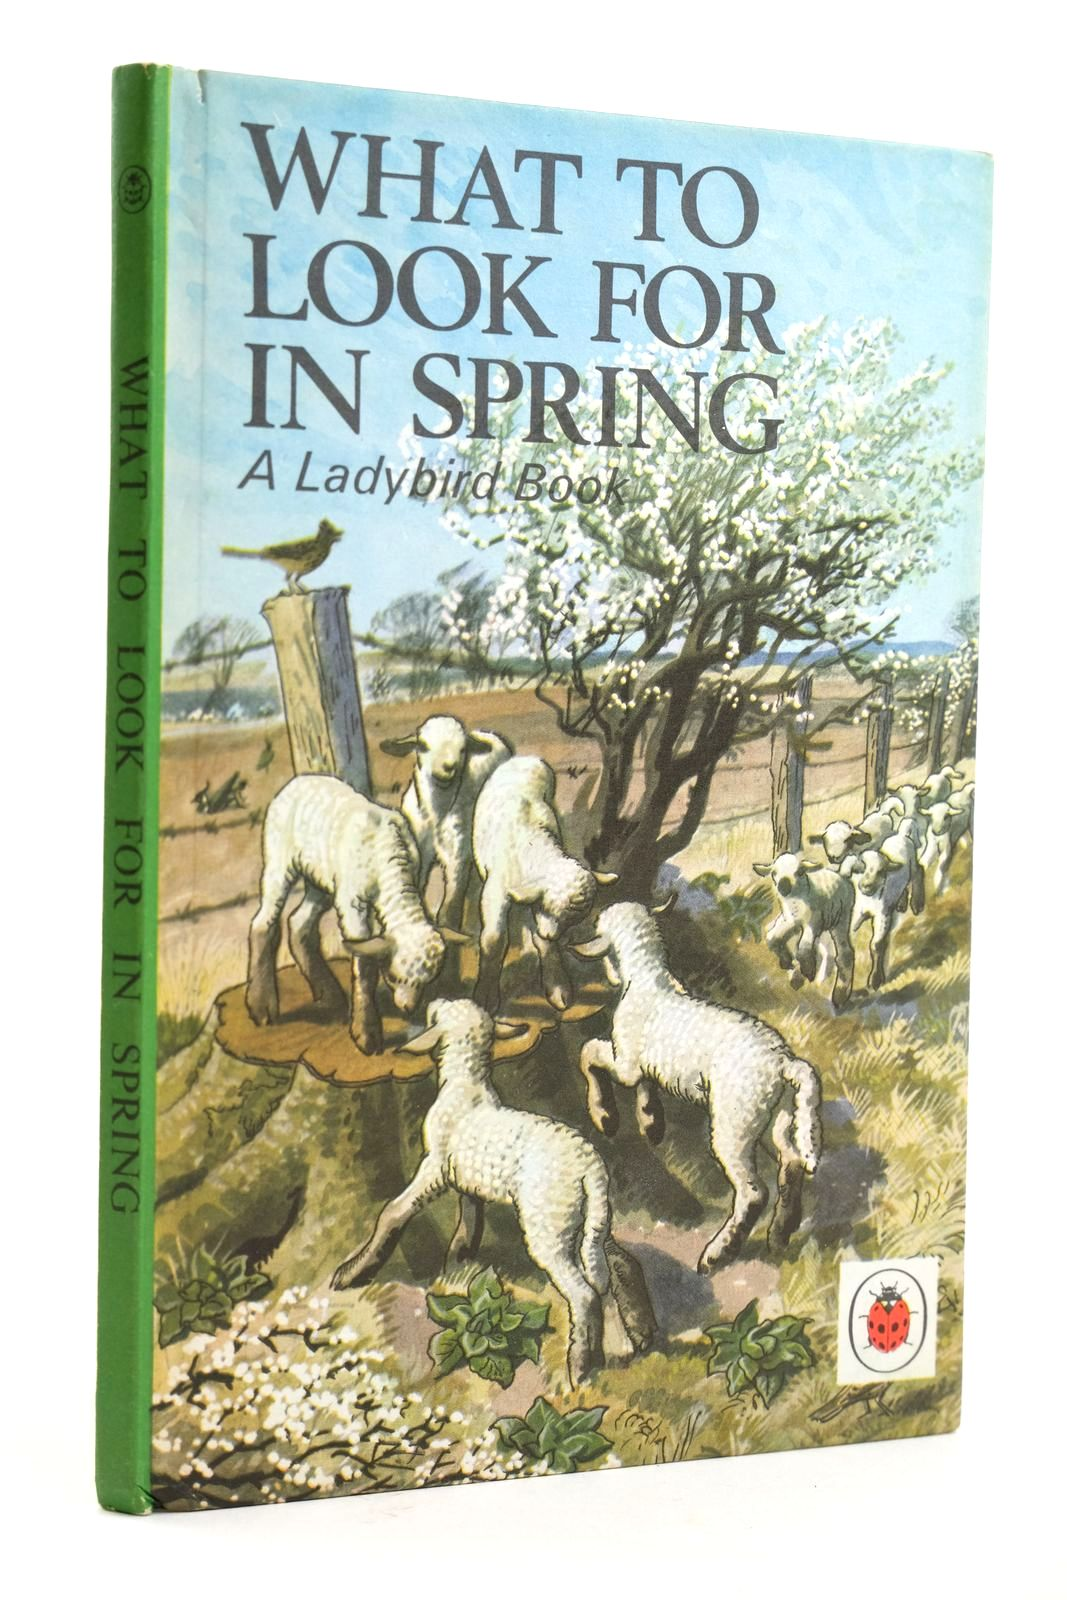 Photo of WHAT TO LOOK FOR IN SPRING written by Watson, E.L. Grant illustrated by Tunnicliffe, C.F. published by Wills & Hepworth Ltd. (STOCK CODE: 2131782)  for sale by Stella & Rose's Books